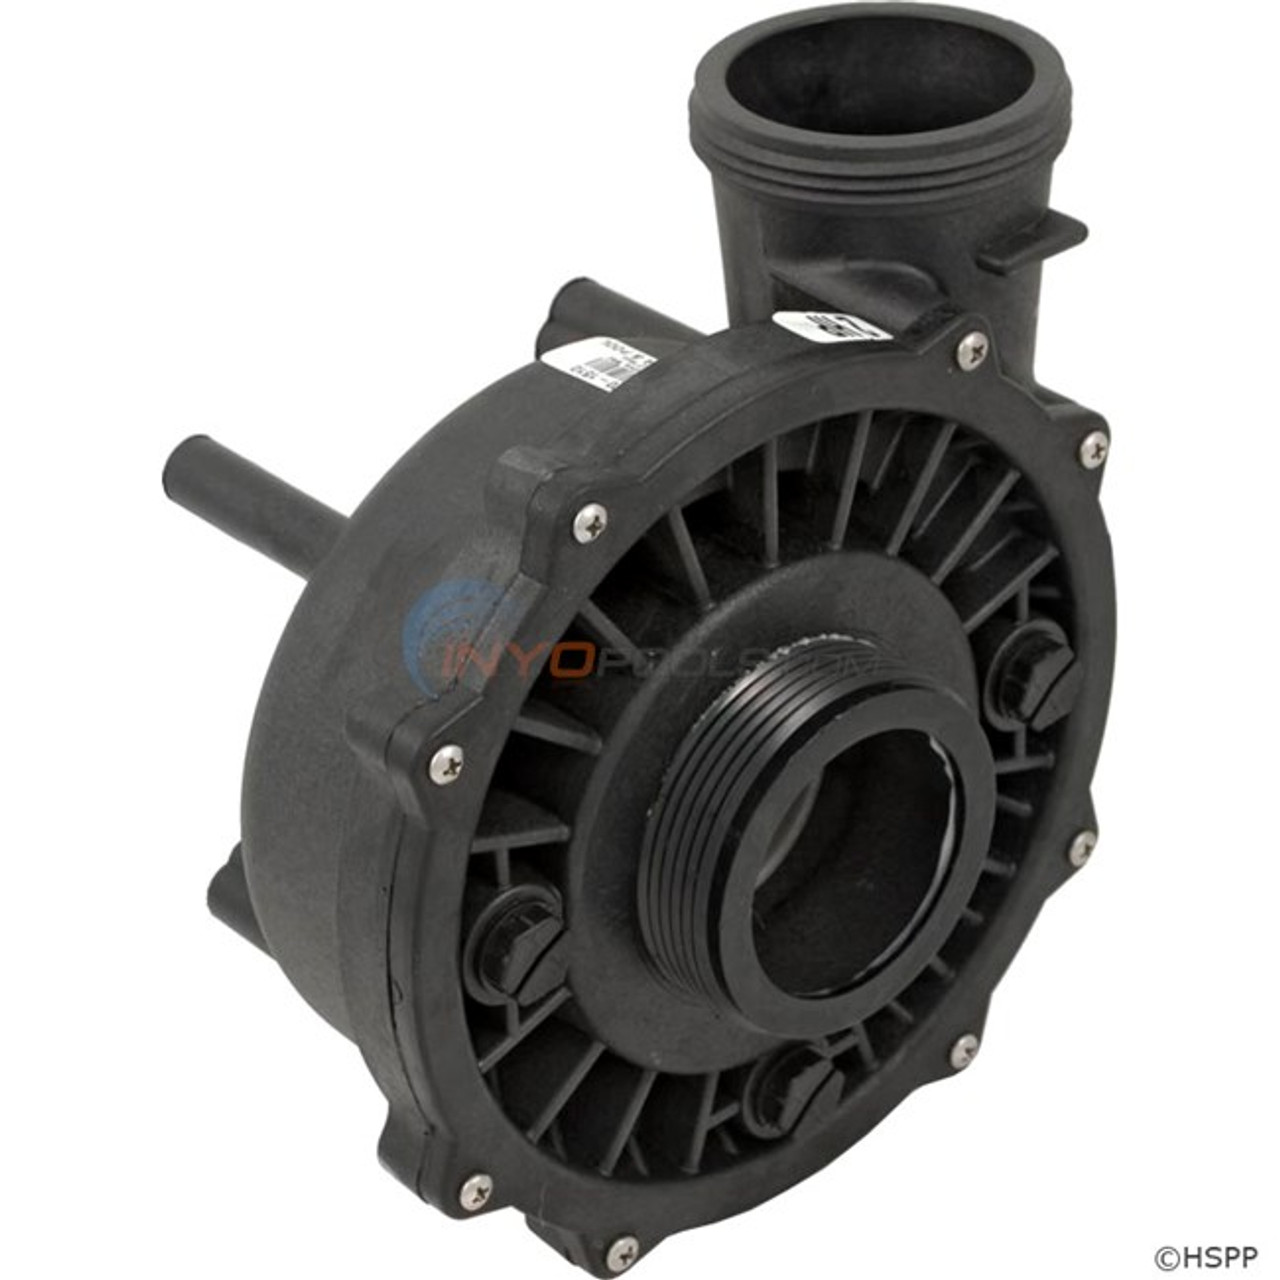 "Waterway, Executive, Wet, End, 2.5"", 48, Frame, 1, 1.5hp, 2hp, 3hp, 4hp, 4.5hp, 5hp, 310-1800, 310-1810, 310-1820, 310-1840, 310-1860, 310-1850, 310-1830, Pump, hot, tub, spa,"